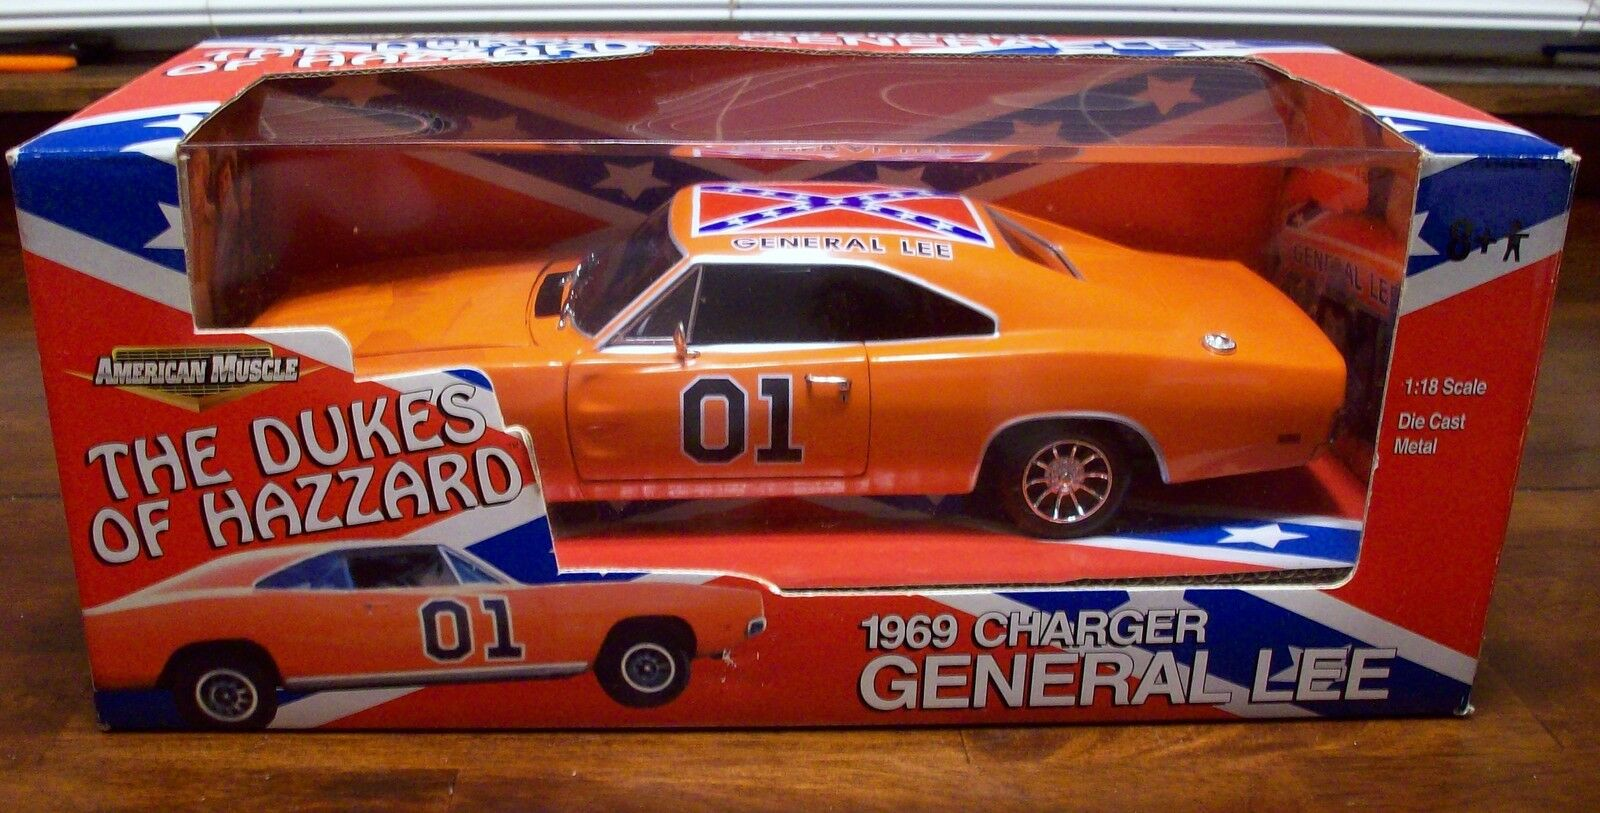 to build the general lee car from the dukes of hazzard tv show movie